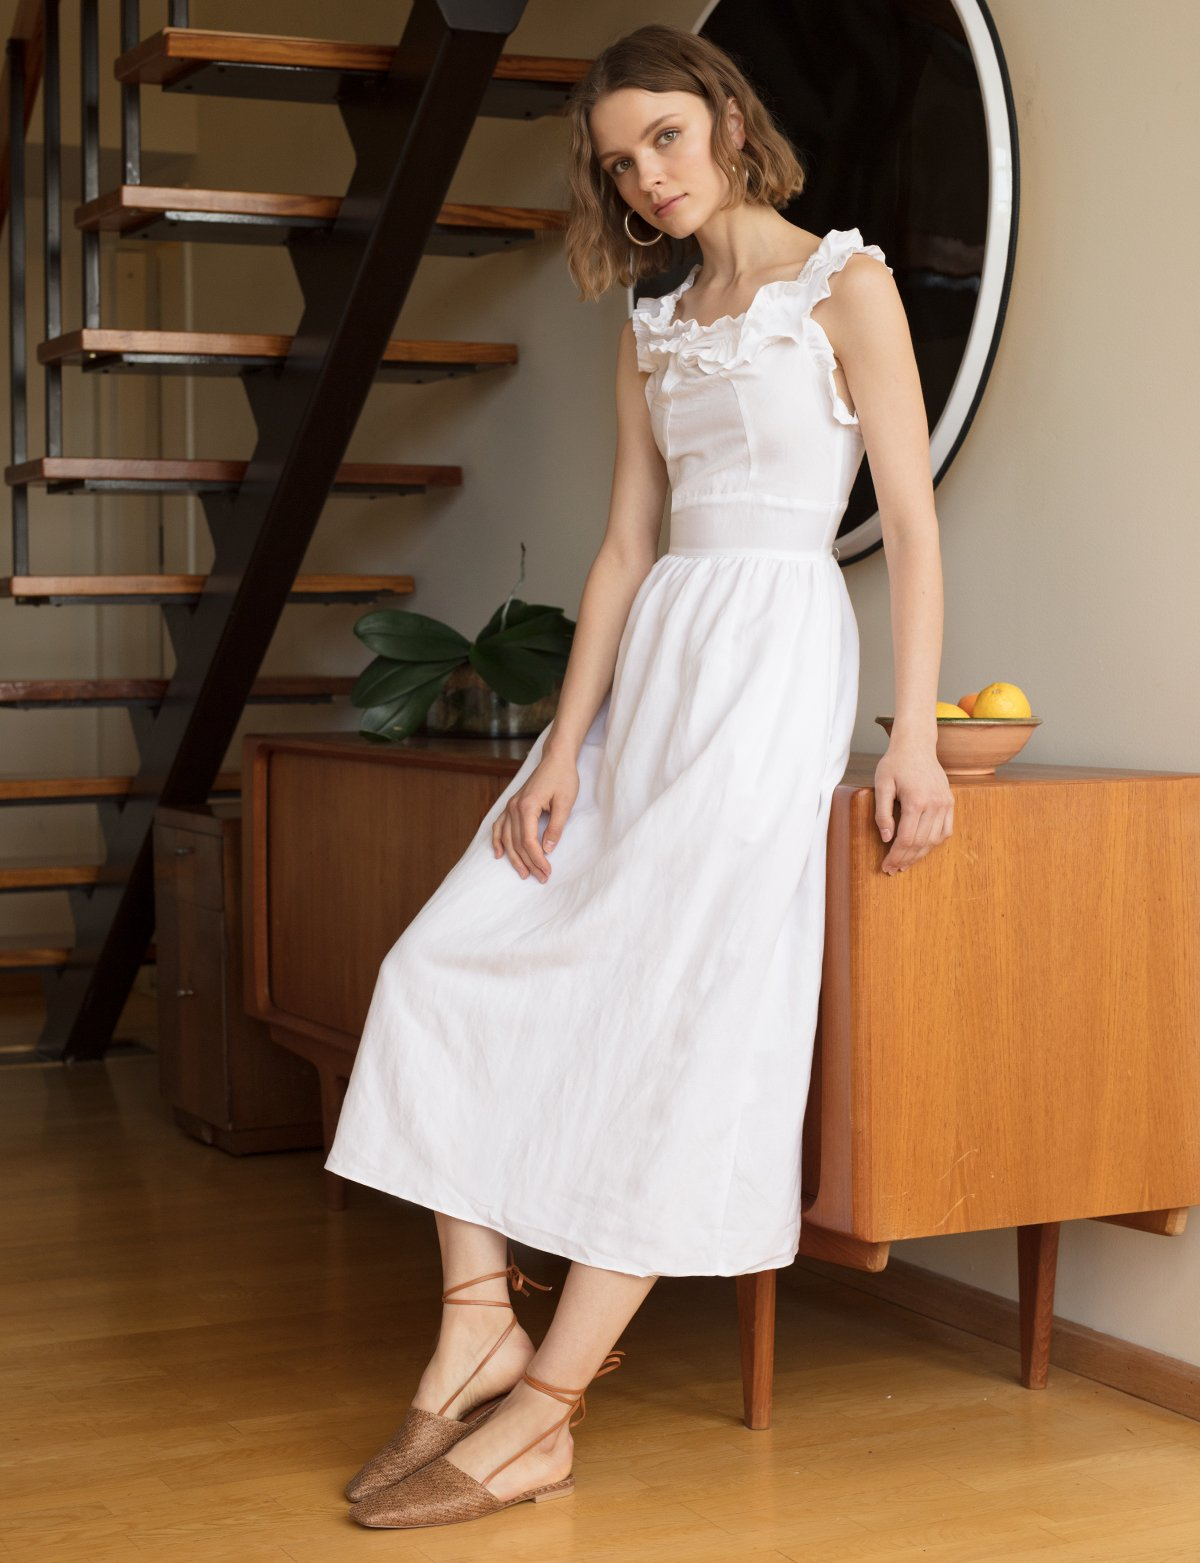 Cheap casual wedding dresses   Seriously Cool u Super Affordable Wedding Dresses  Wedding